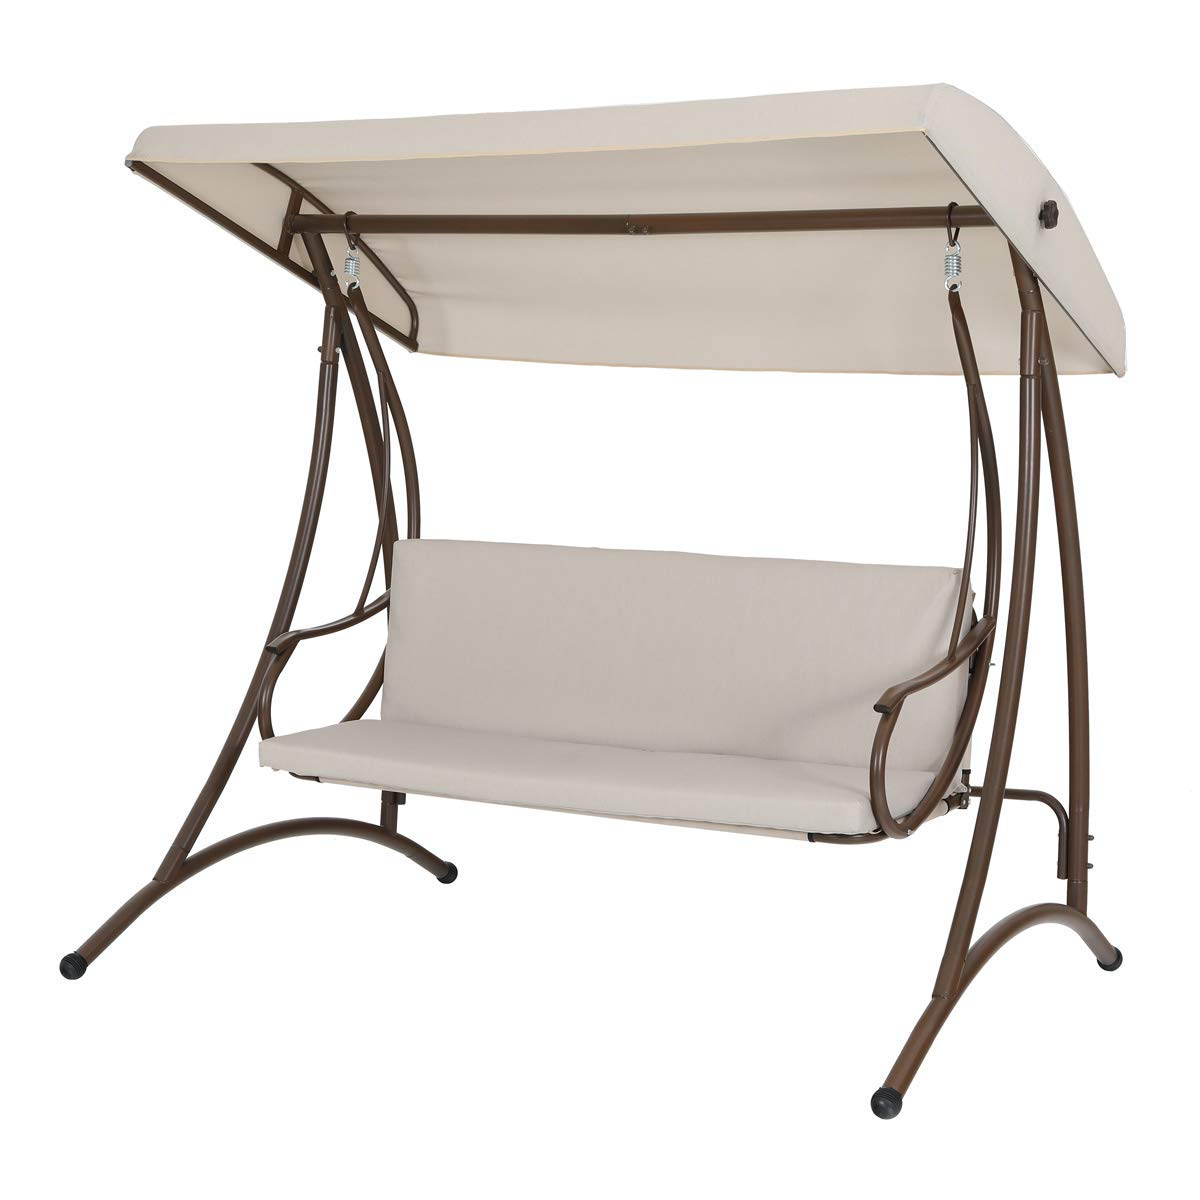 Mf Studio 3 Person Outdoor Large Convertible Canopy Swing Intended For Most Current 2 Person Outdoor Convertible Canopy Swing Gliders With Removable Cushions Beige (Gallery 3 of 30)